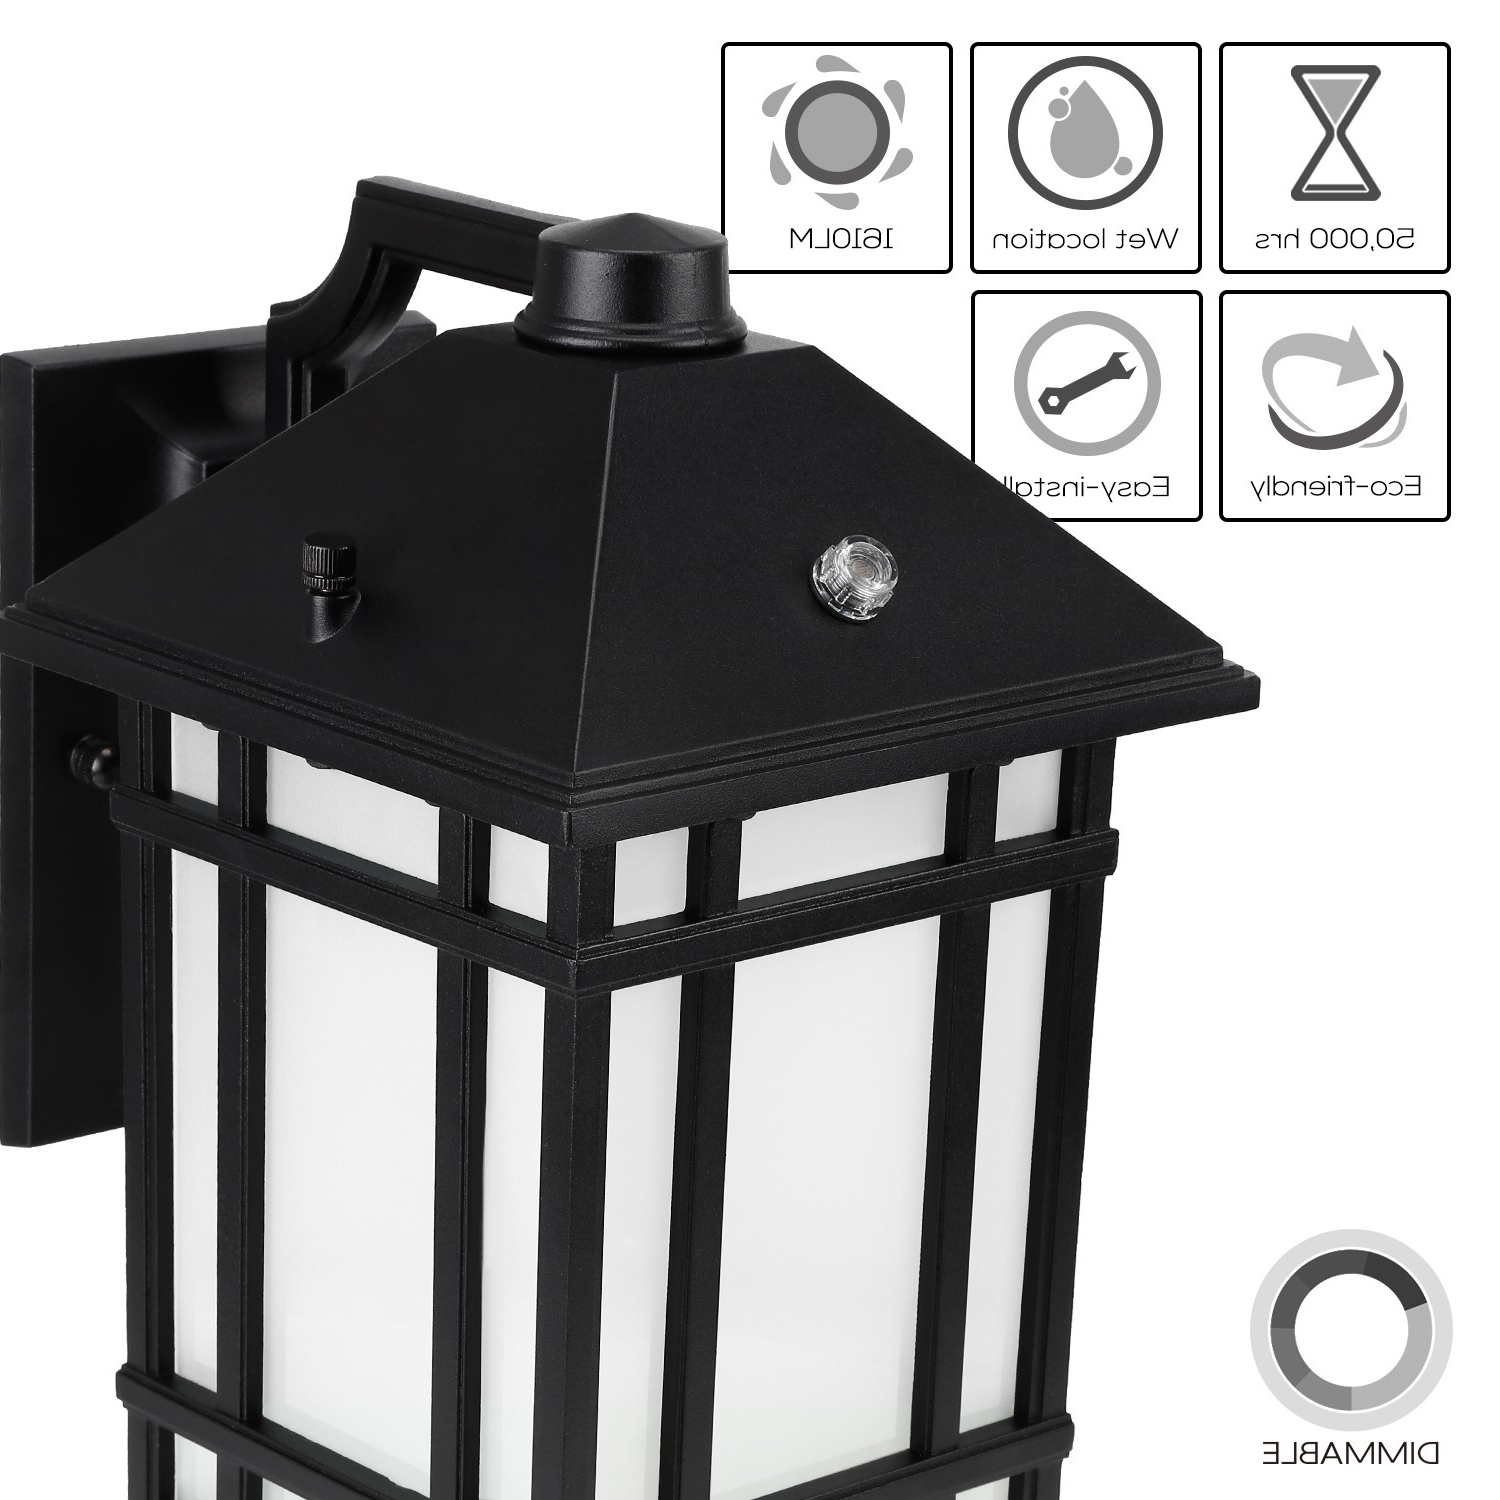 Best And Newest Led Outdoor Wall Lantern With Dusk To Dawn Photocell, 23w (130w Within Dusk To Dawn Led Outdoor Wall Lights (View 9 of 20)